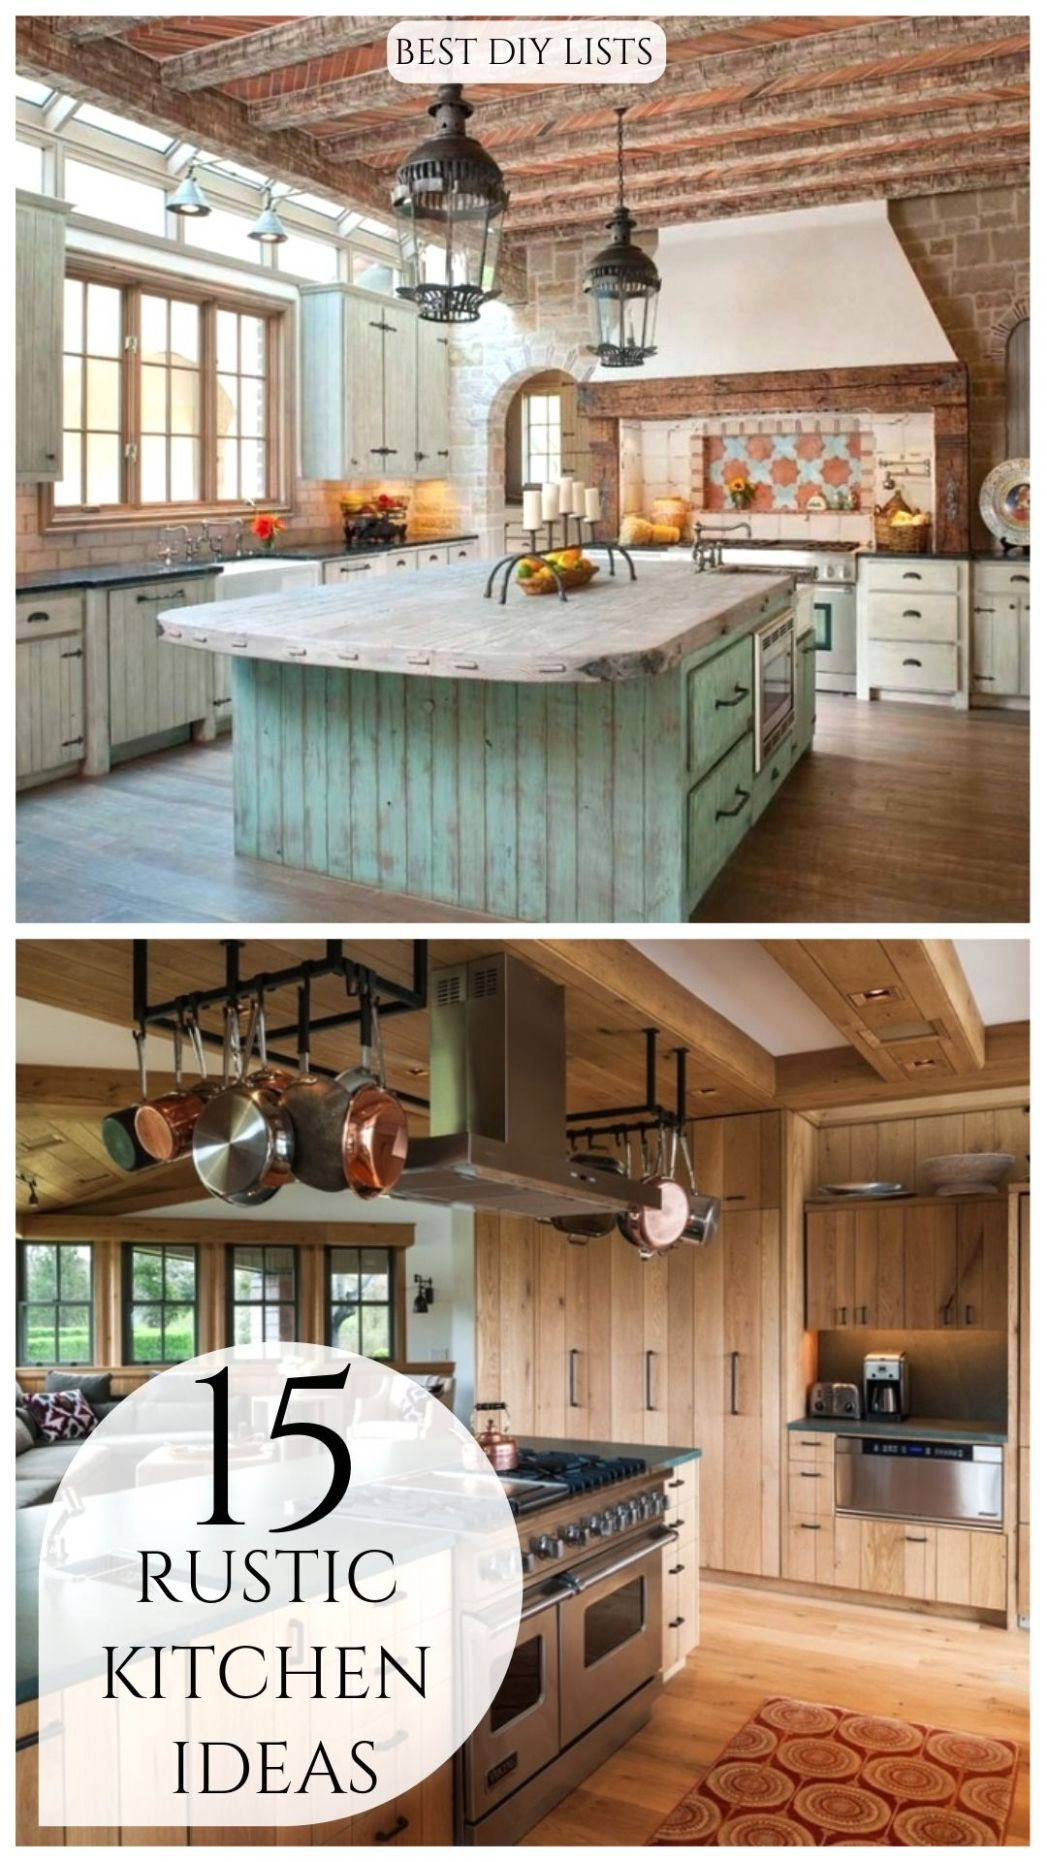 Rustic Kitchen Ideas in 11 | Rustic kitchen decor, Rustic ...